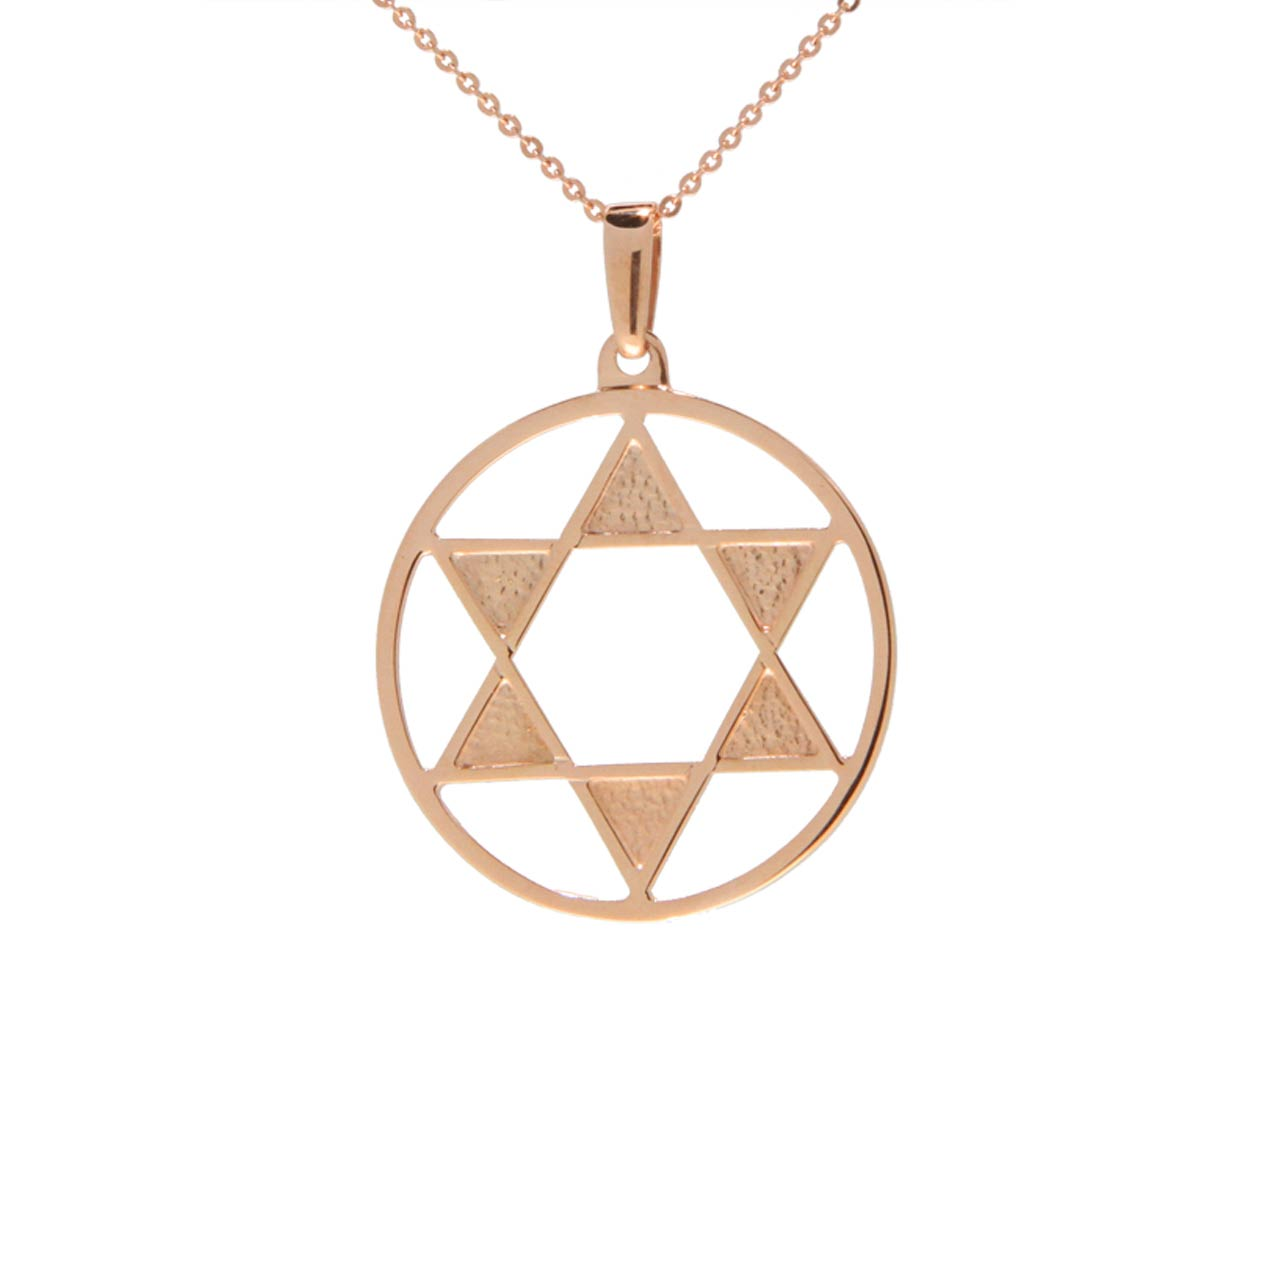 The Star of David Rose Gold Pendant